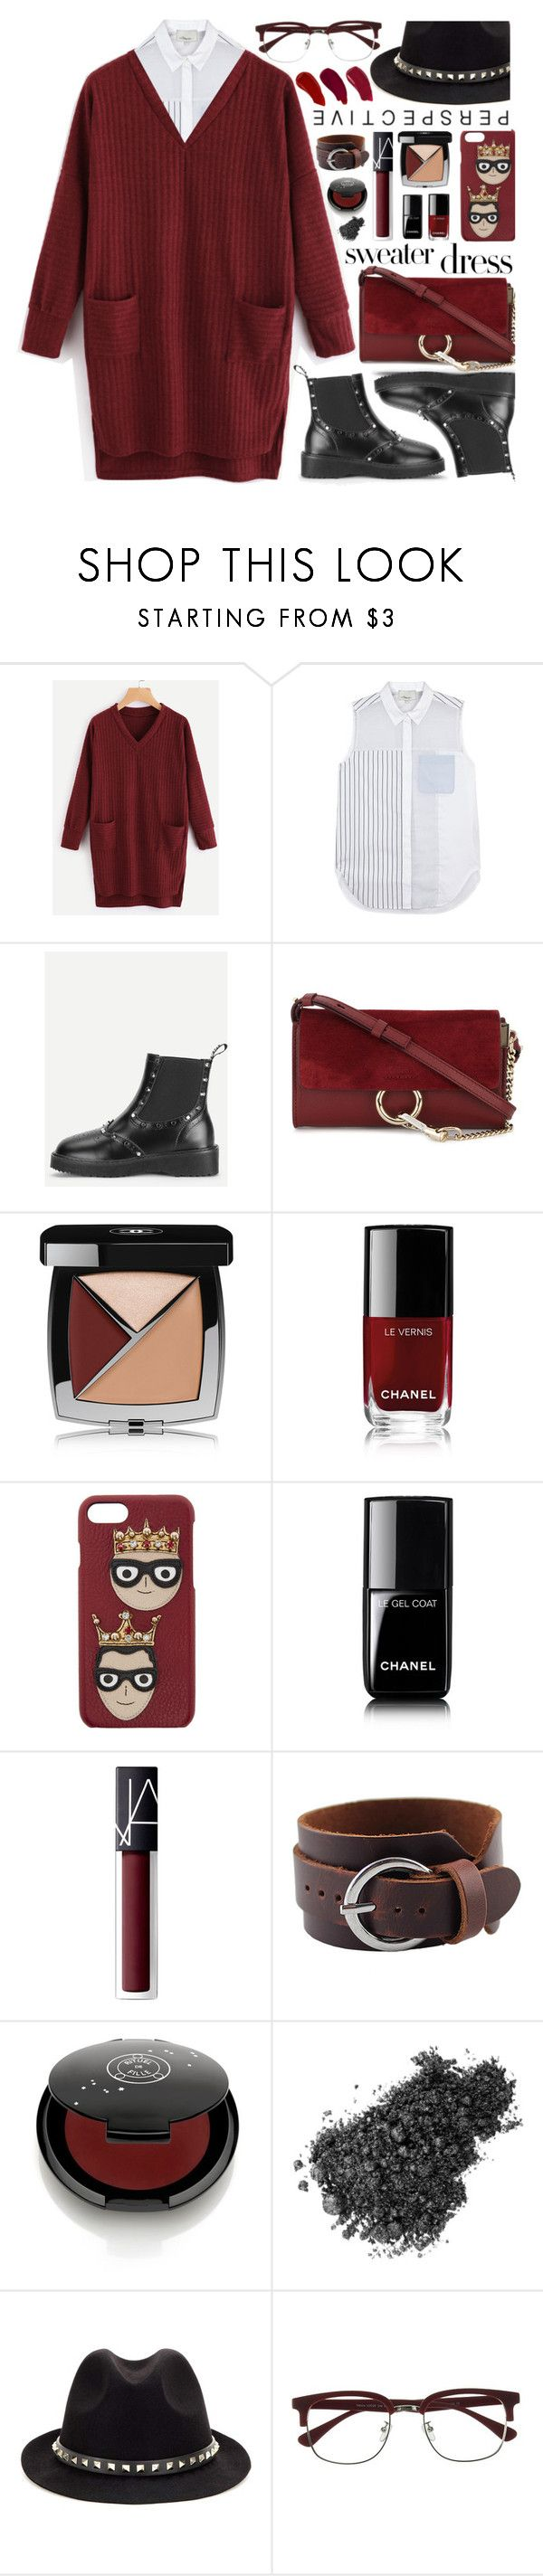 """""""Sweater Dress"""" by meyli-meyli ❤ liked on Polyvore featuring 3.1 Phillip Lim, Chloé, Chanel, Dolce&Gabbana, NARS Cosmetics, Rituel de Fille, Valentino, EyeBuyDirect.com, Ellis Faas and sweaterdresses"""